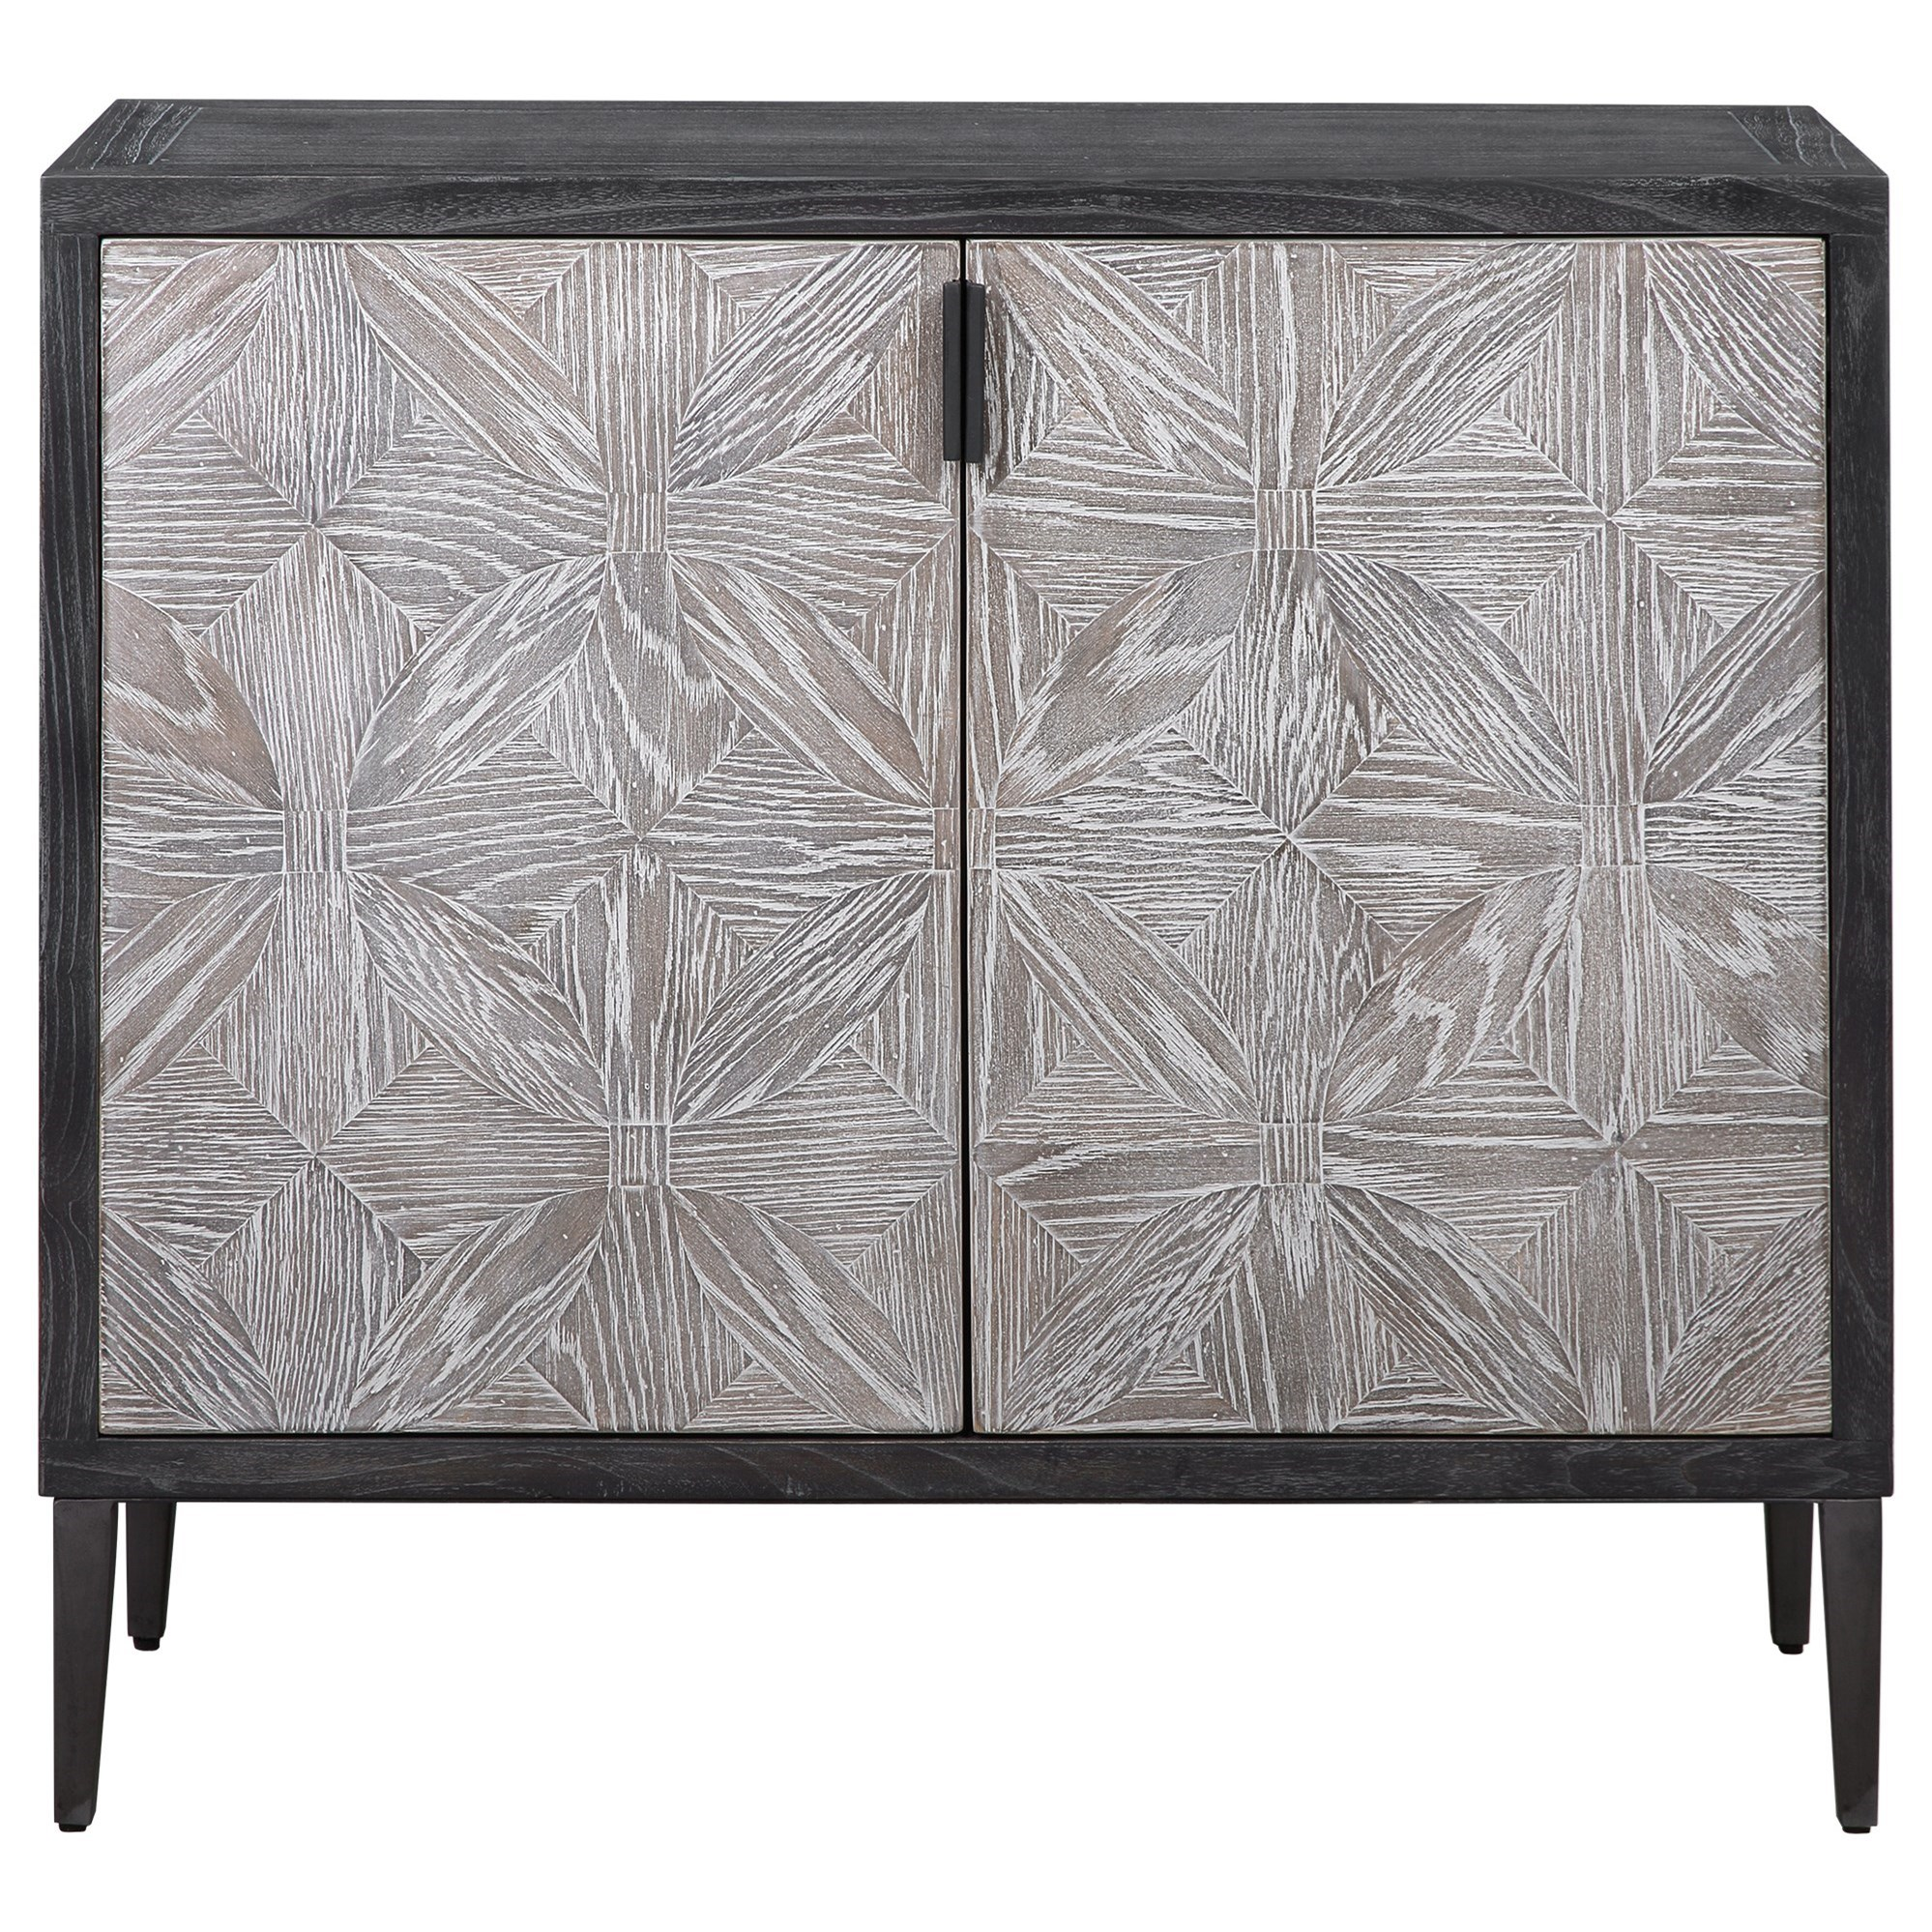 Accent Furniture - Chests Laurentia 2 Door Accent Cabinet by Uttermost at Upper Room Home Furnishings